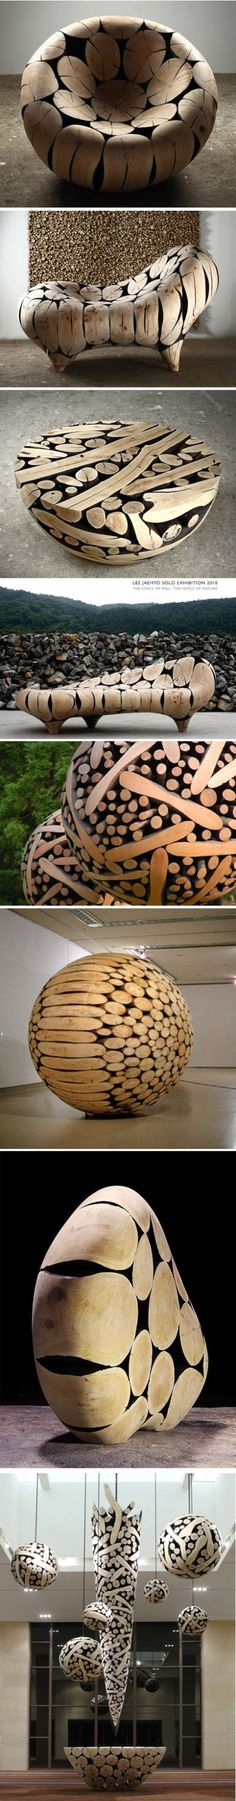 Log Art by Korean artist Lee Jae-Hyo